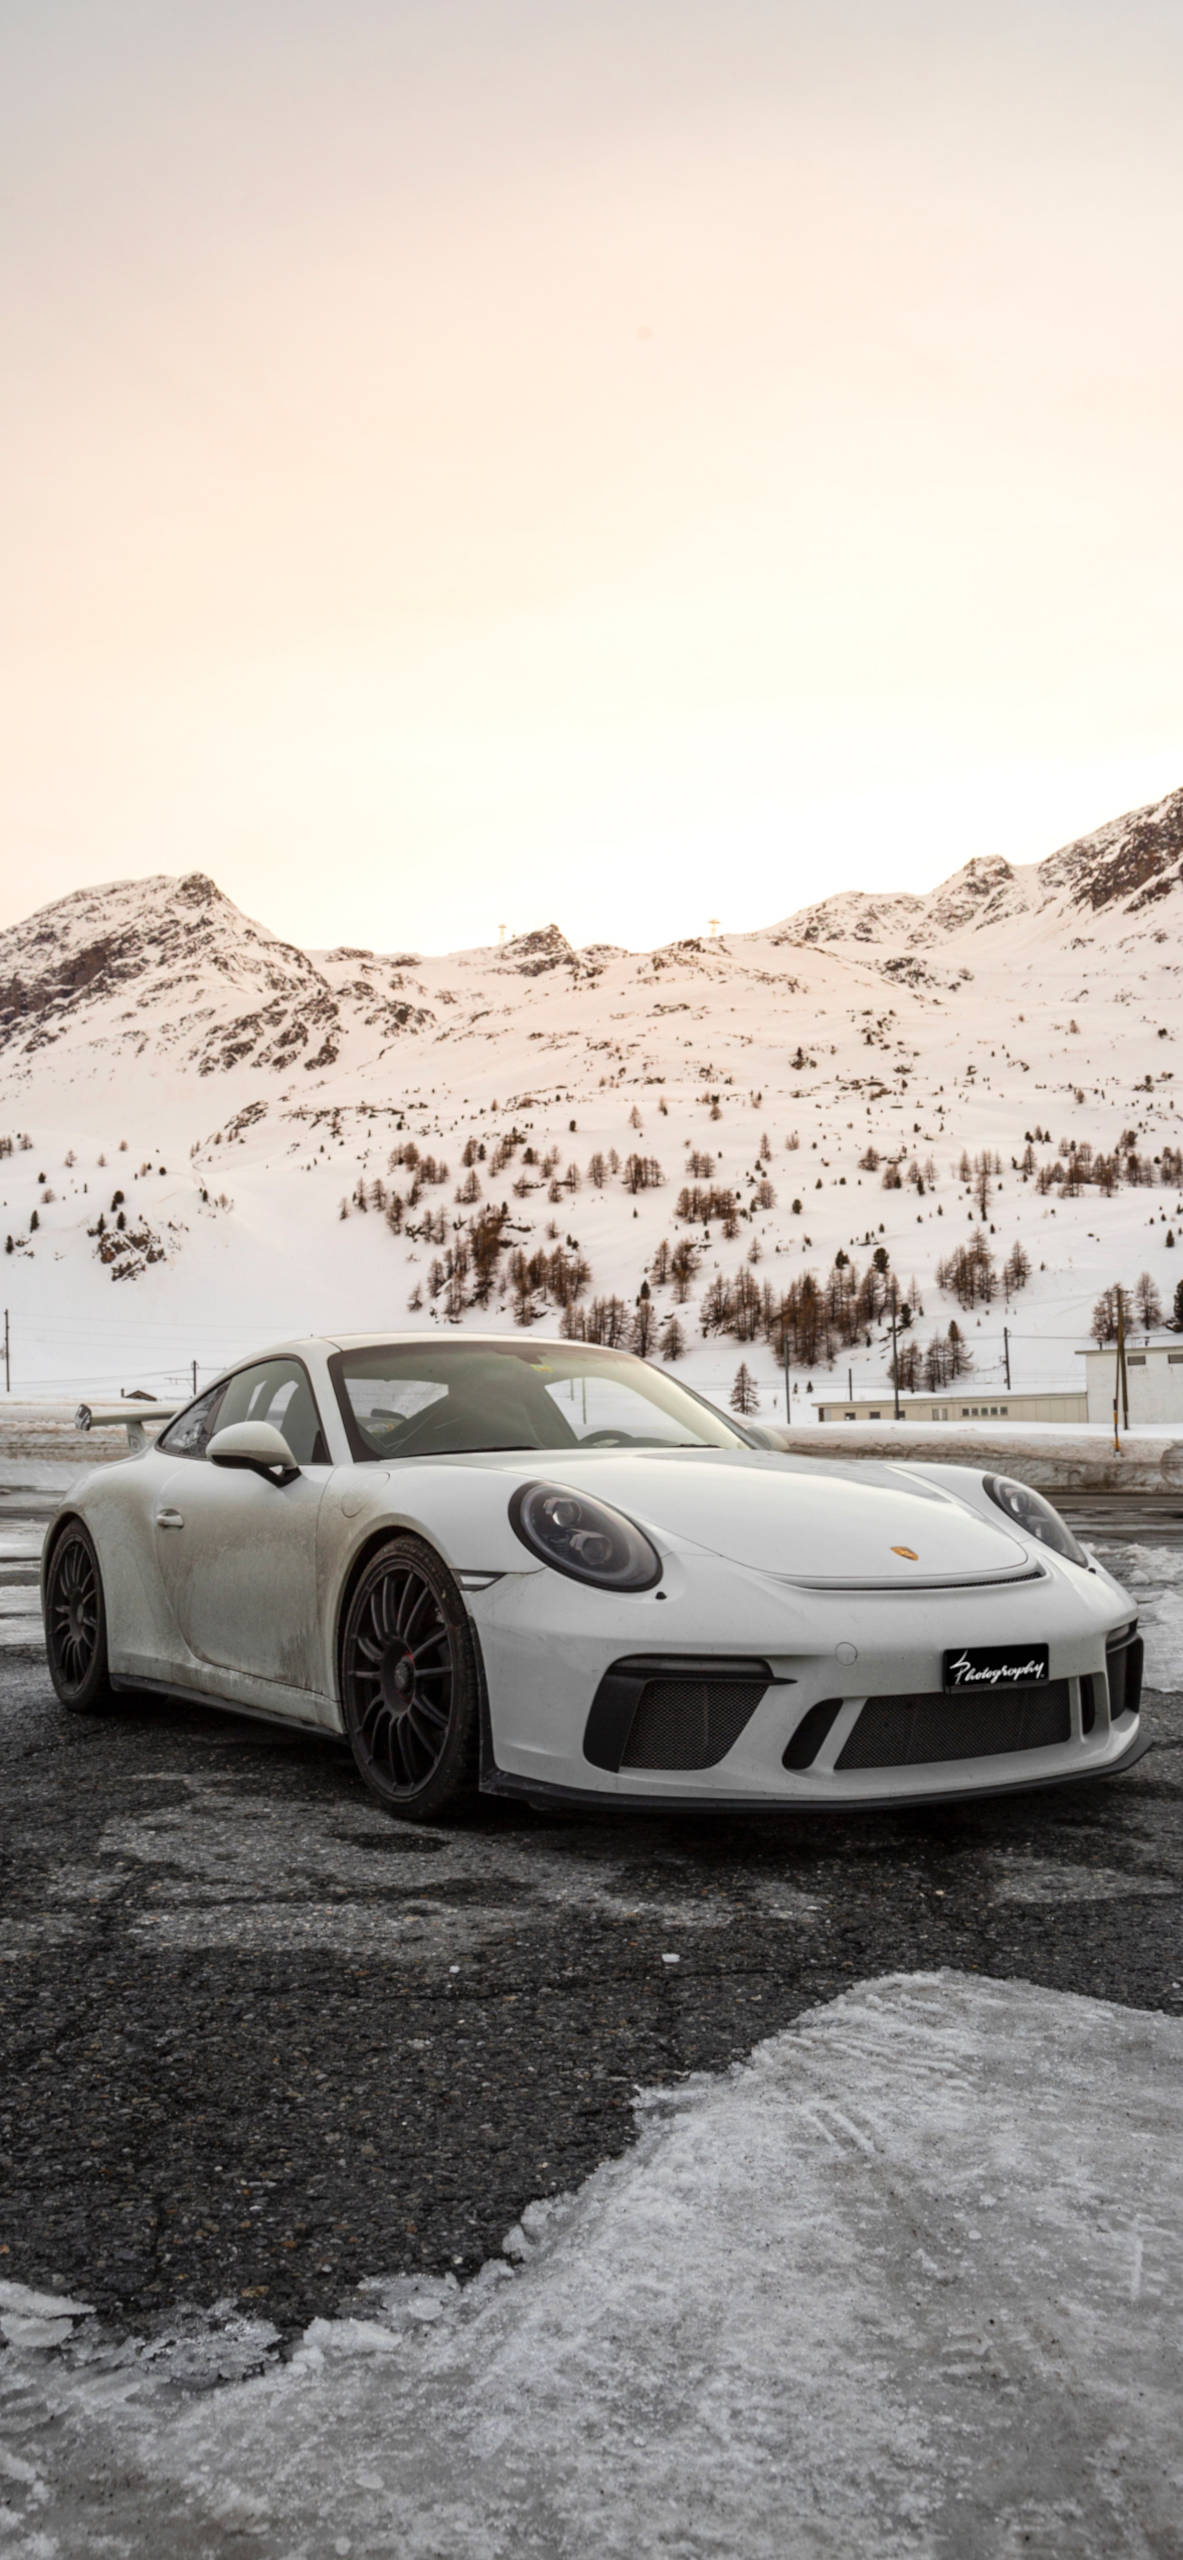 iPhone wallpapers cars porche snow Cars